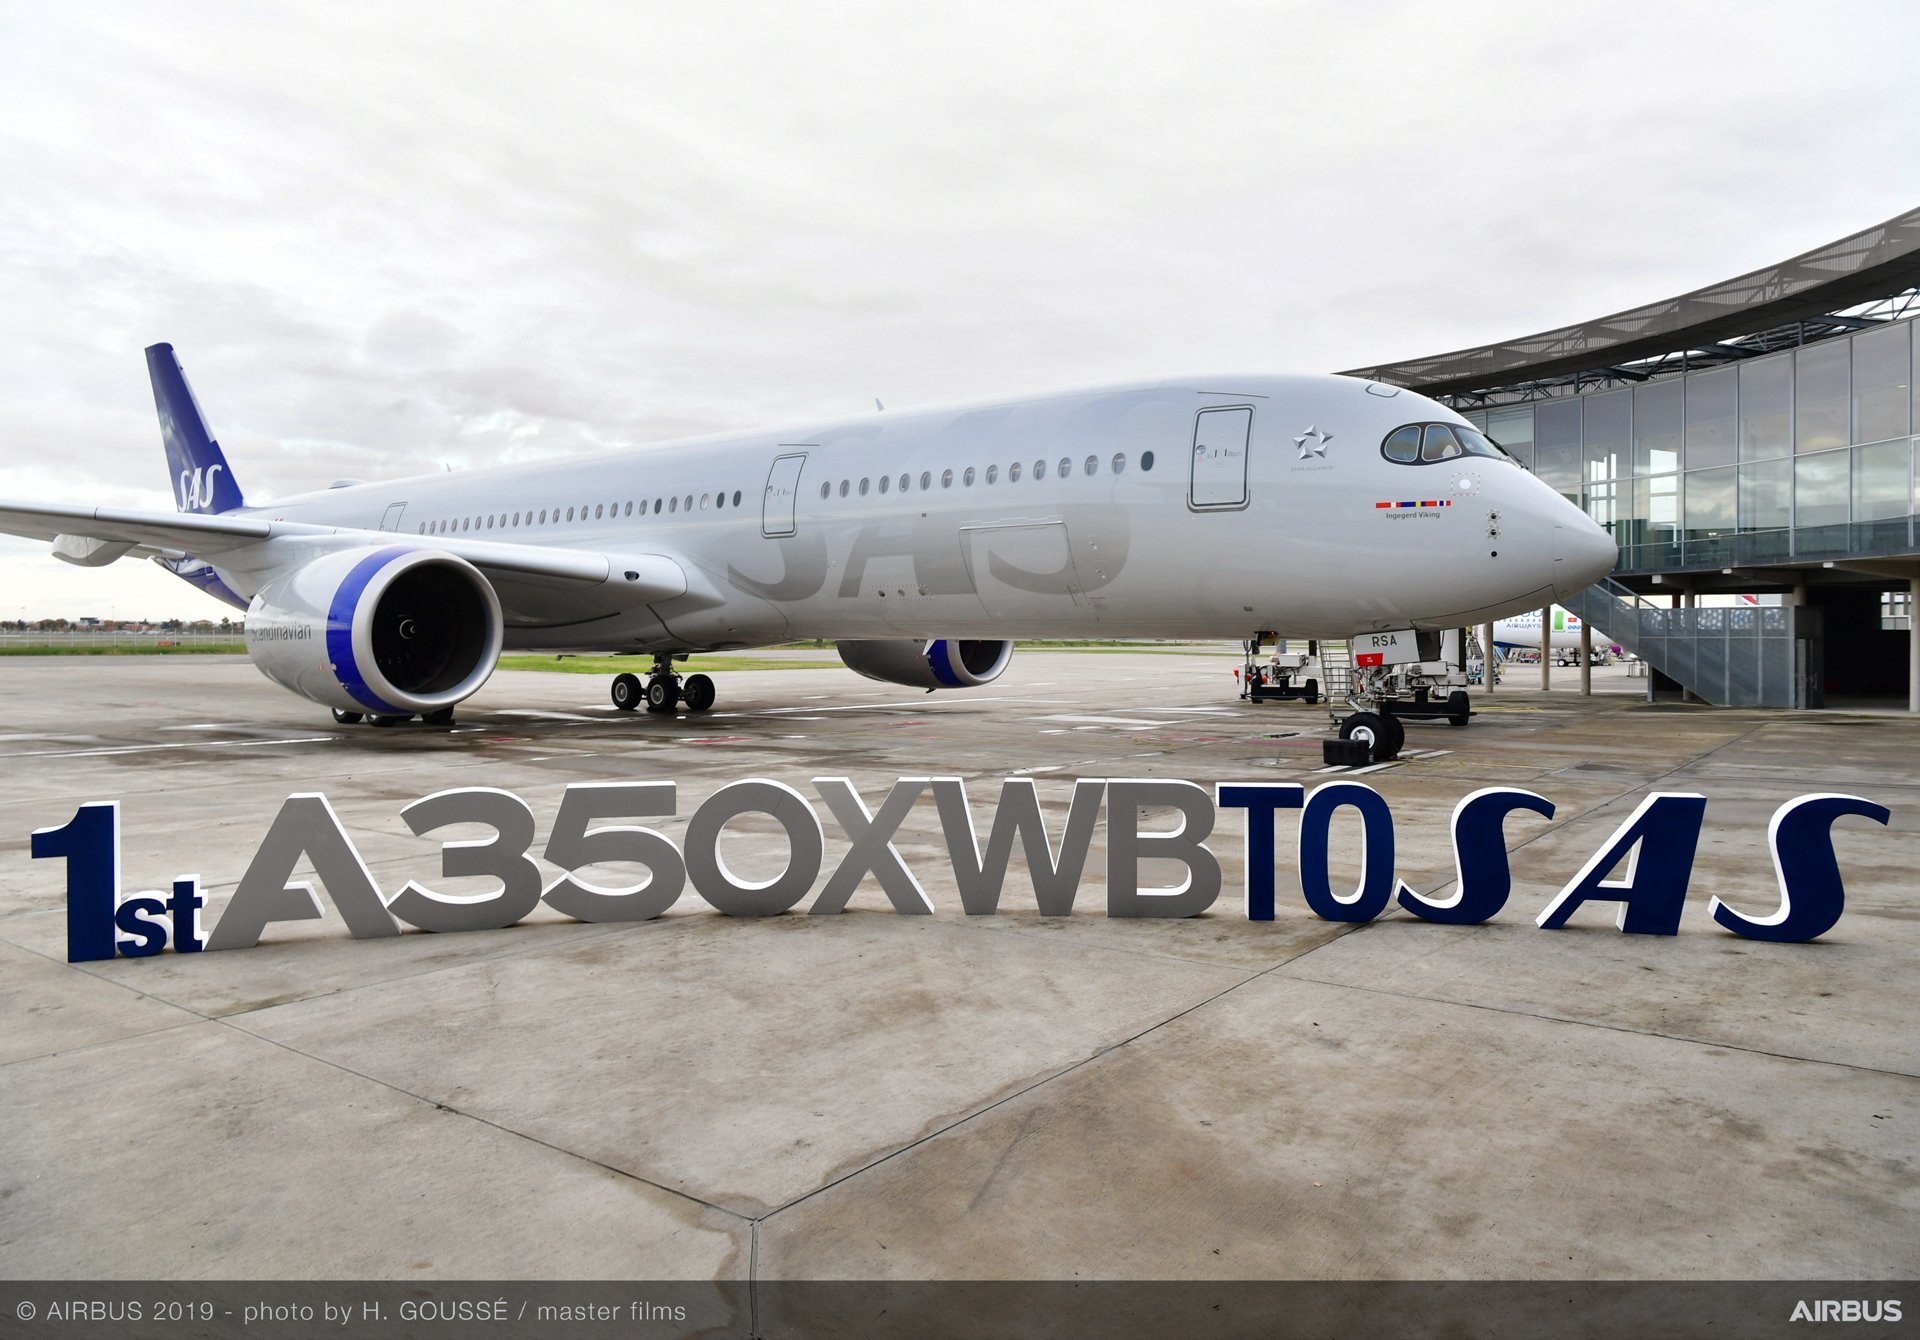 SAS received its first of eight A350-900 versions of the A350 XWB in November 2019, with the Scandinavian carrier targeted to introduce Airbus' latest generation, highly efficient widebody aircraft on the Copenhagen-Chicago long-haul route – followed by other international destinations, including cities in North America and Asia